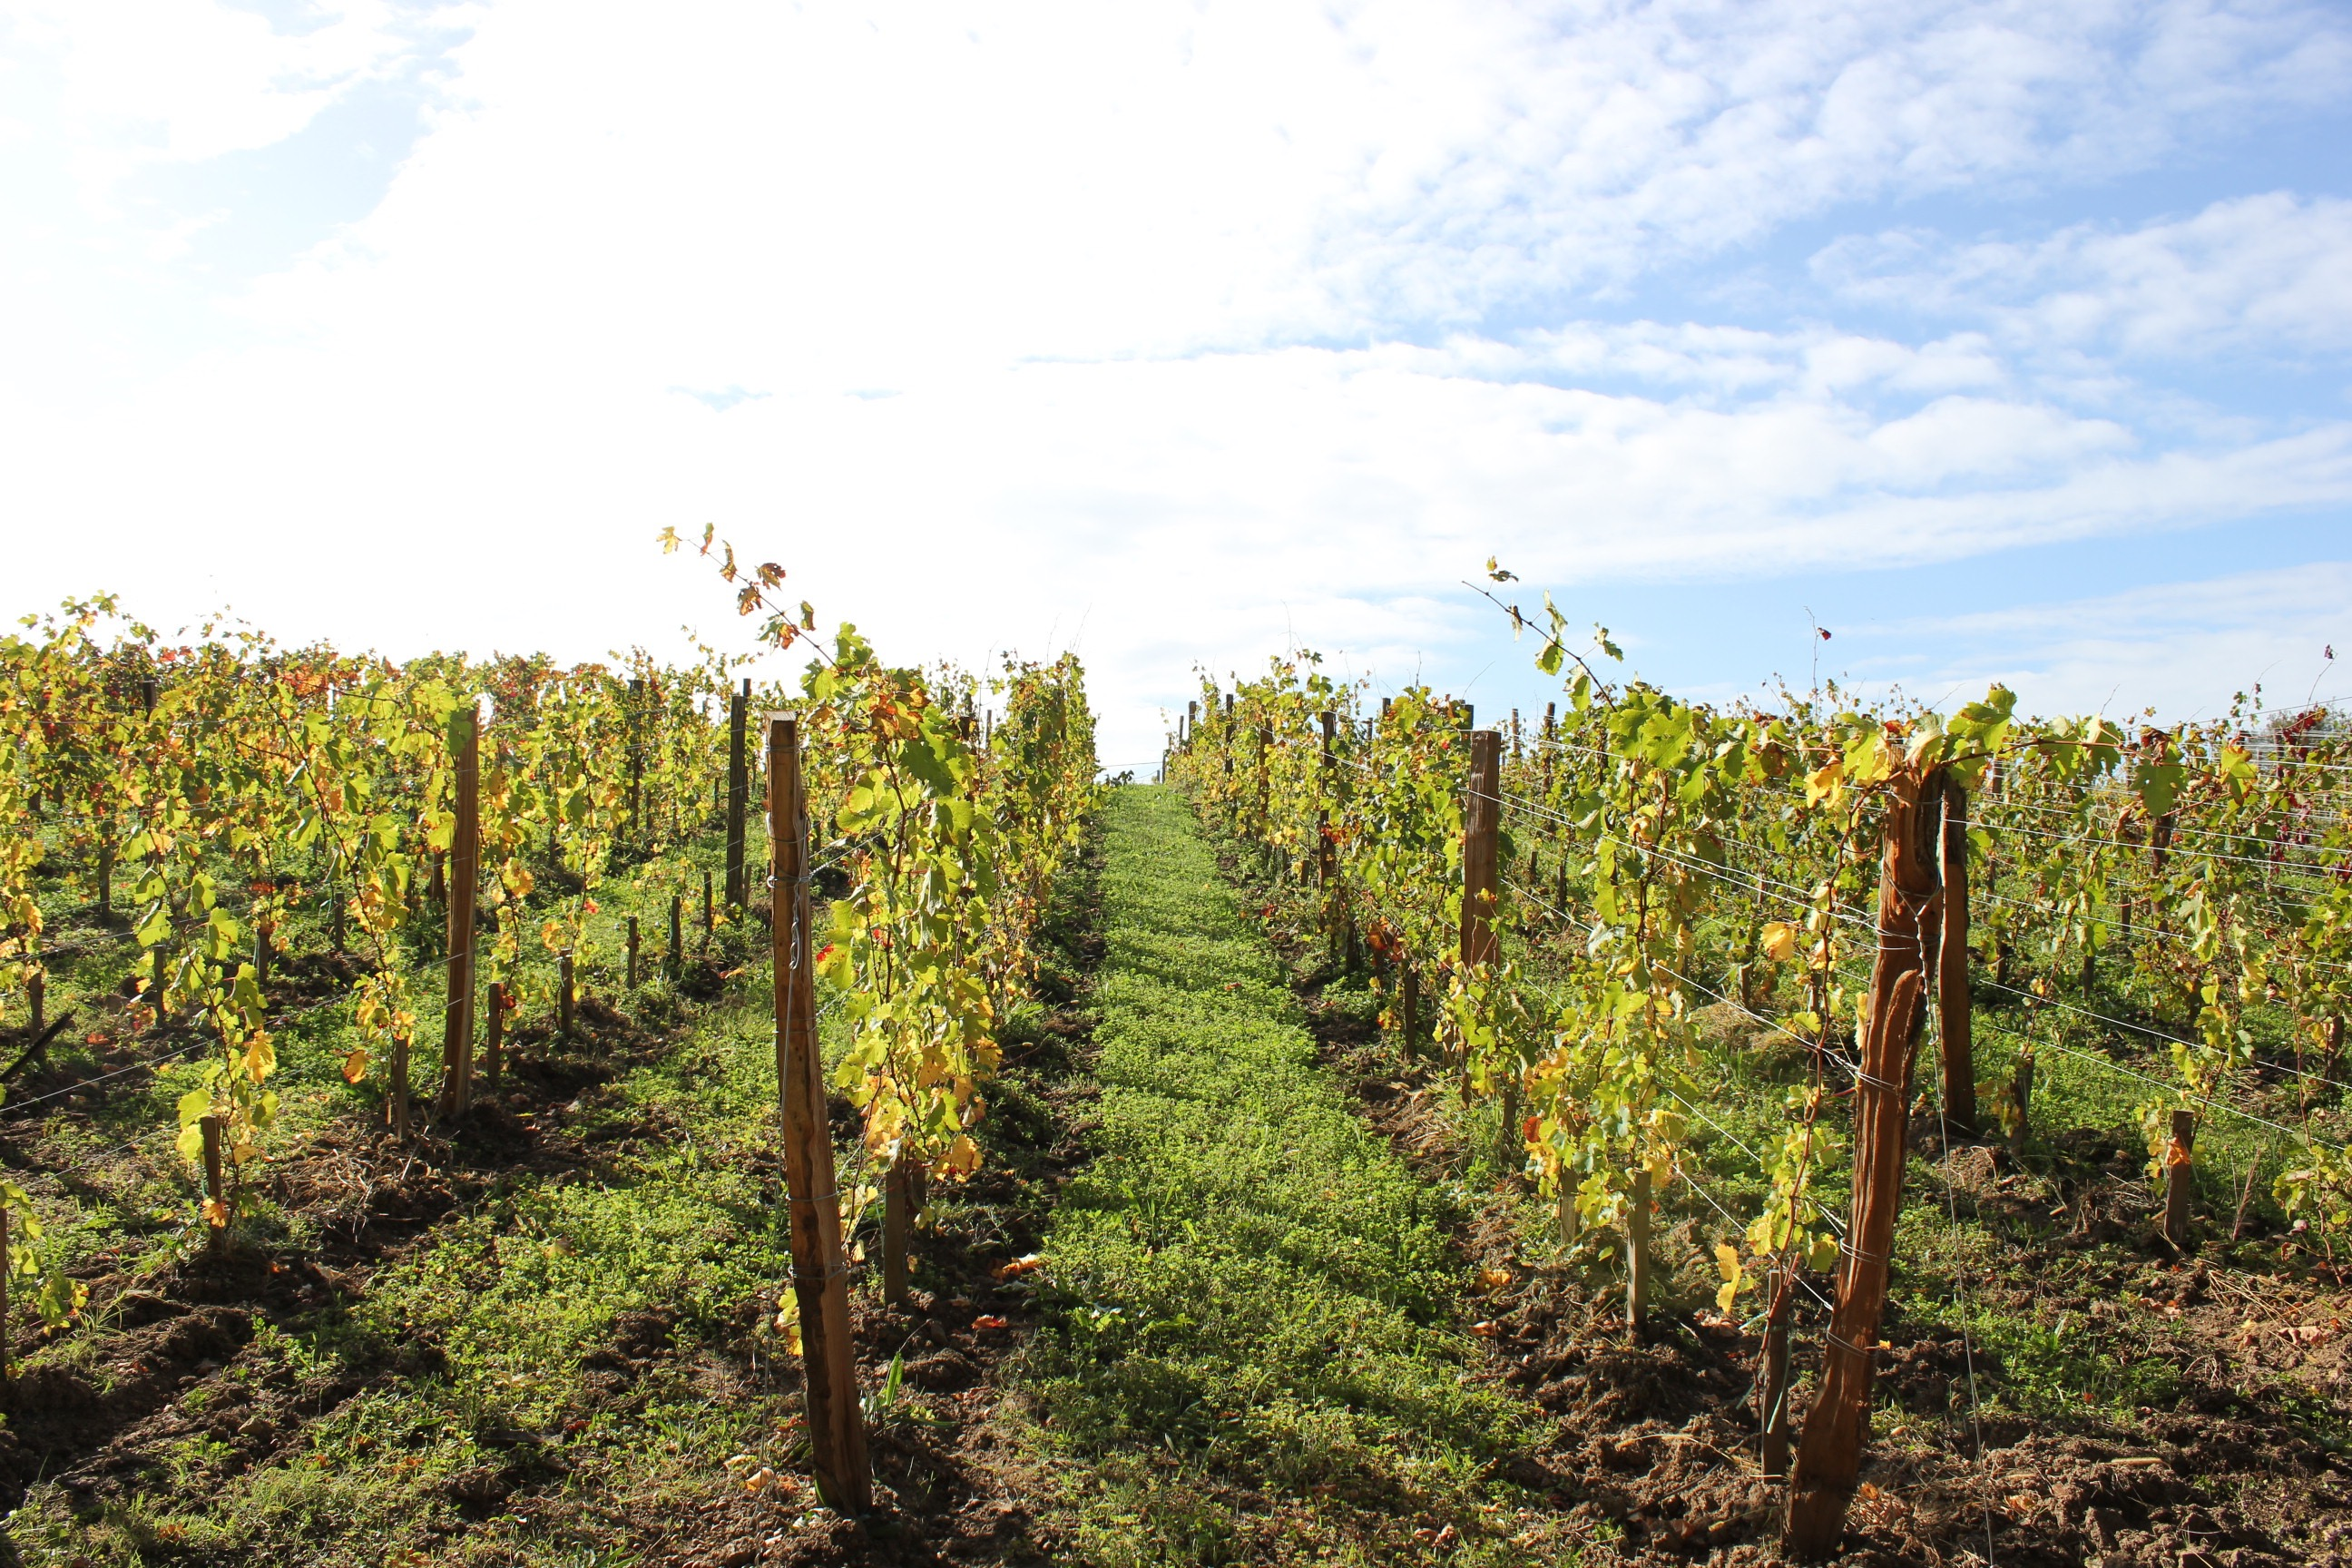 The new vines planted in 2016